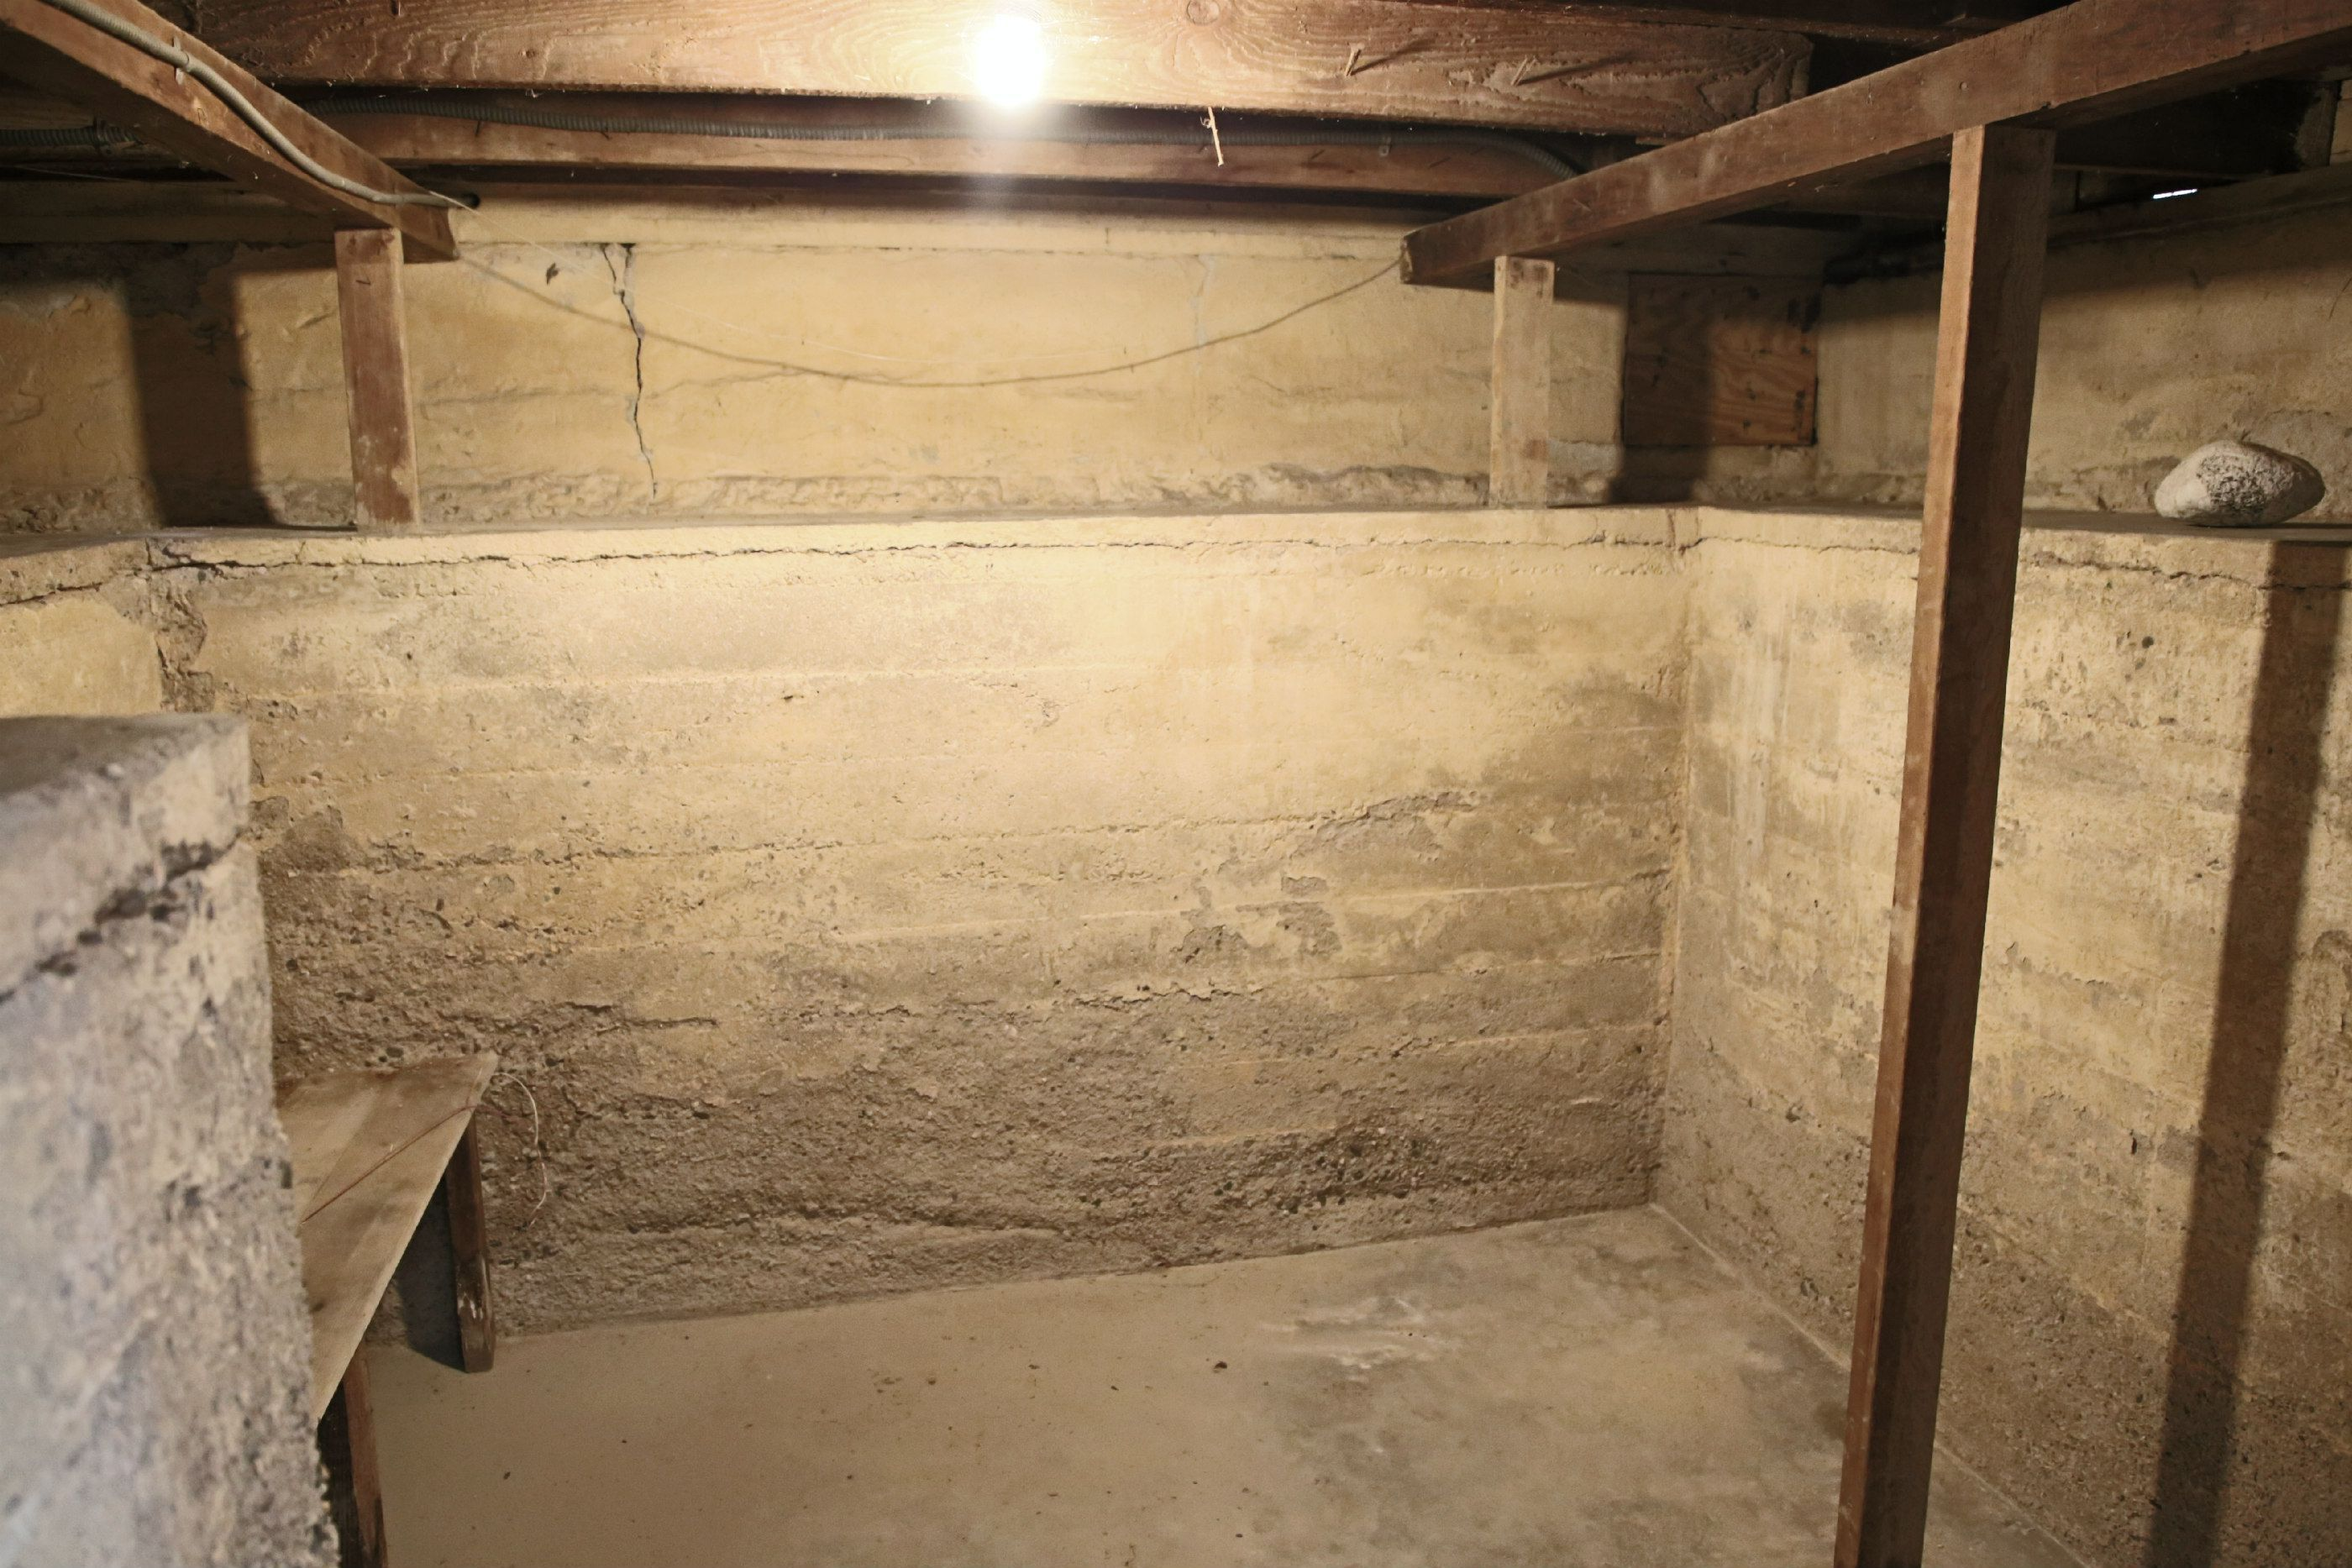 Basement is perfect for holiday storage bins or turn it into a wine cellar.